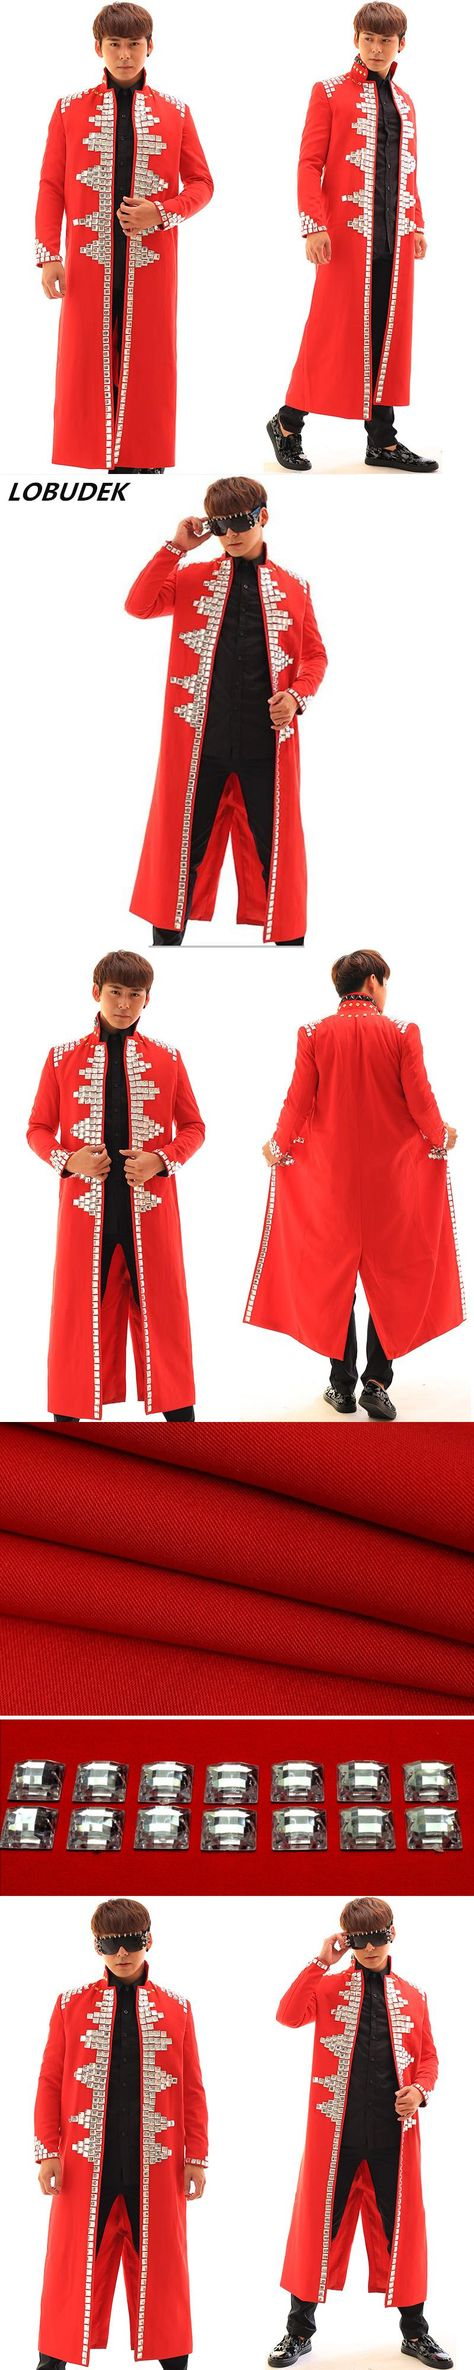 Male long jacket costumes Acrylic bead diamond coat outfit blazer personality nightclub tide singer dancer show stage party bar